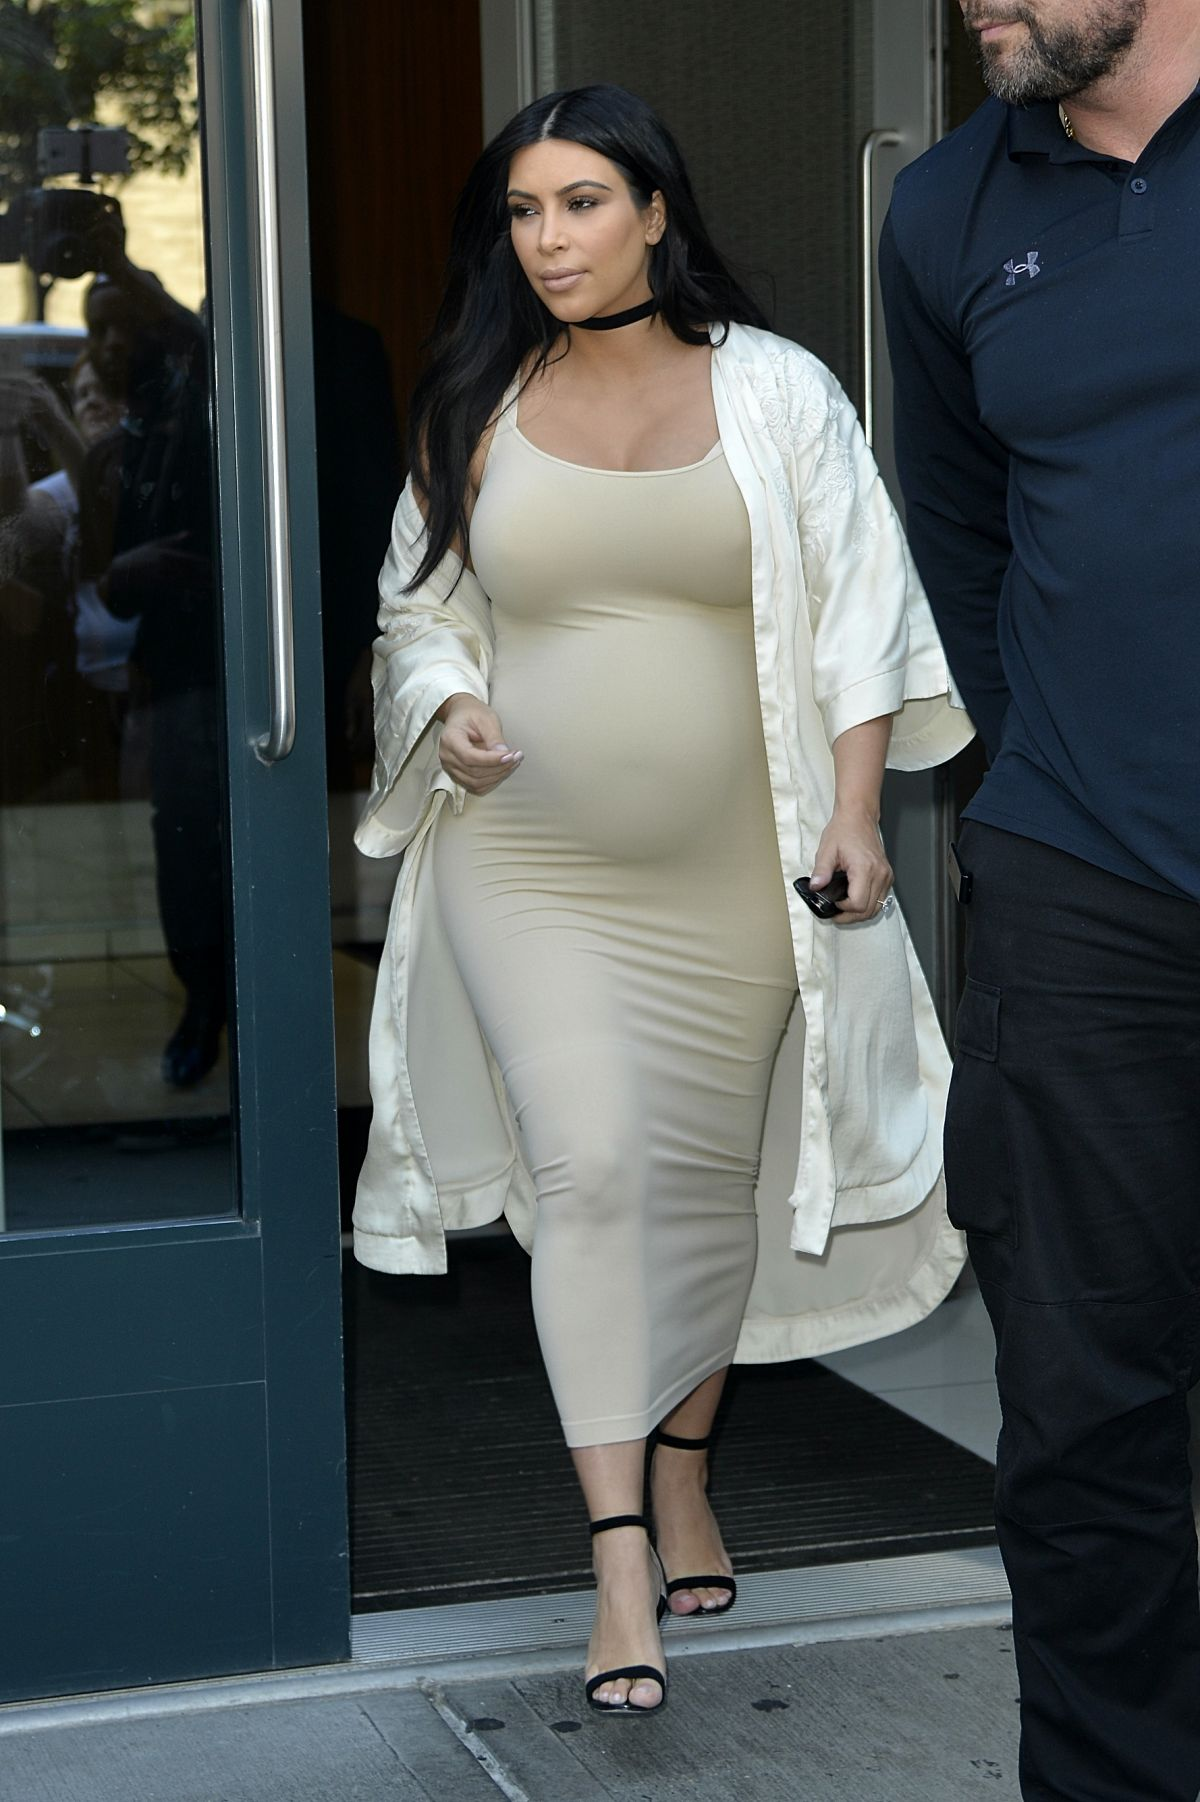 Pregnant Kylie Jenner Has A Baby Name Picked Out: Pregnant KIM KARDASHIAN Leaves Her Apartment In New York